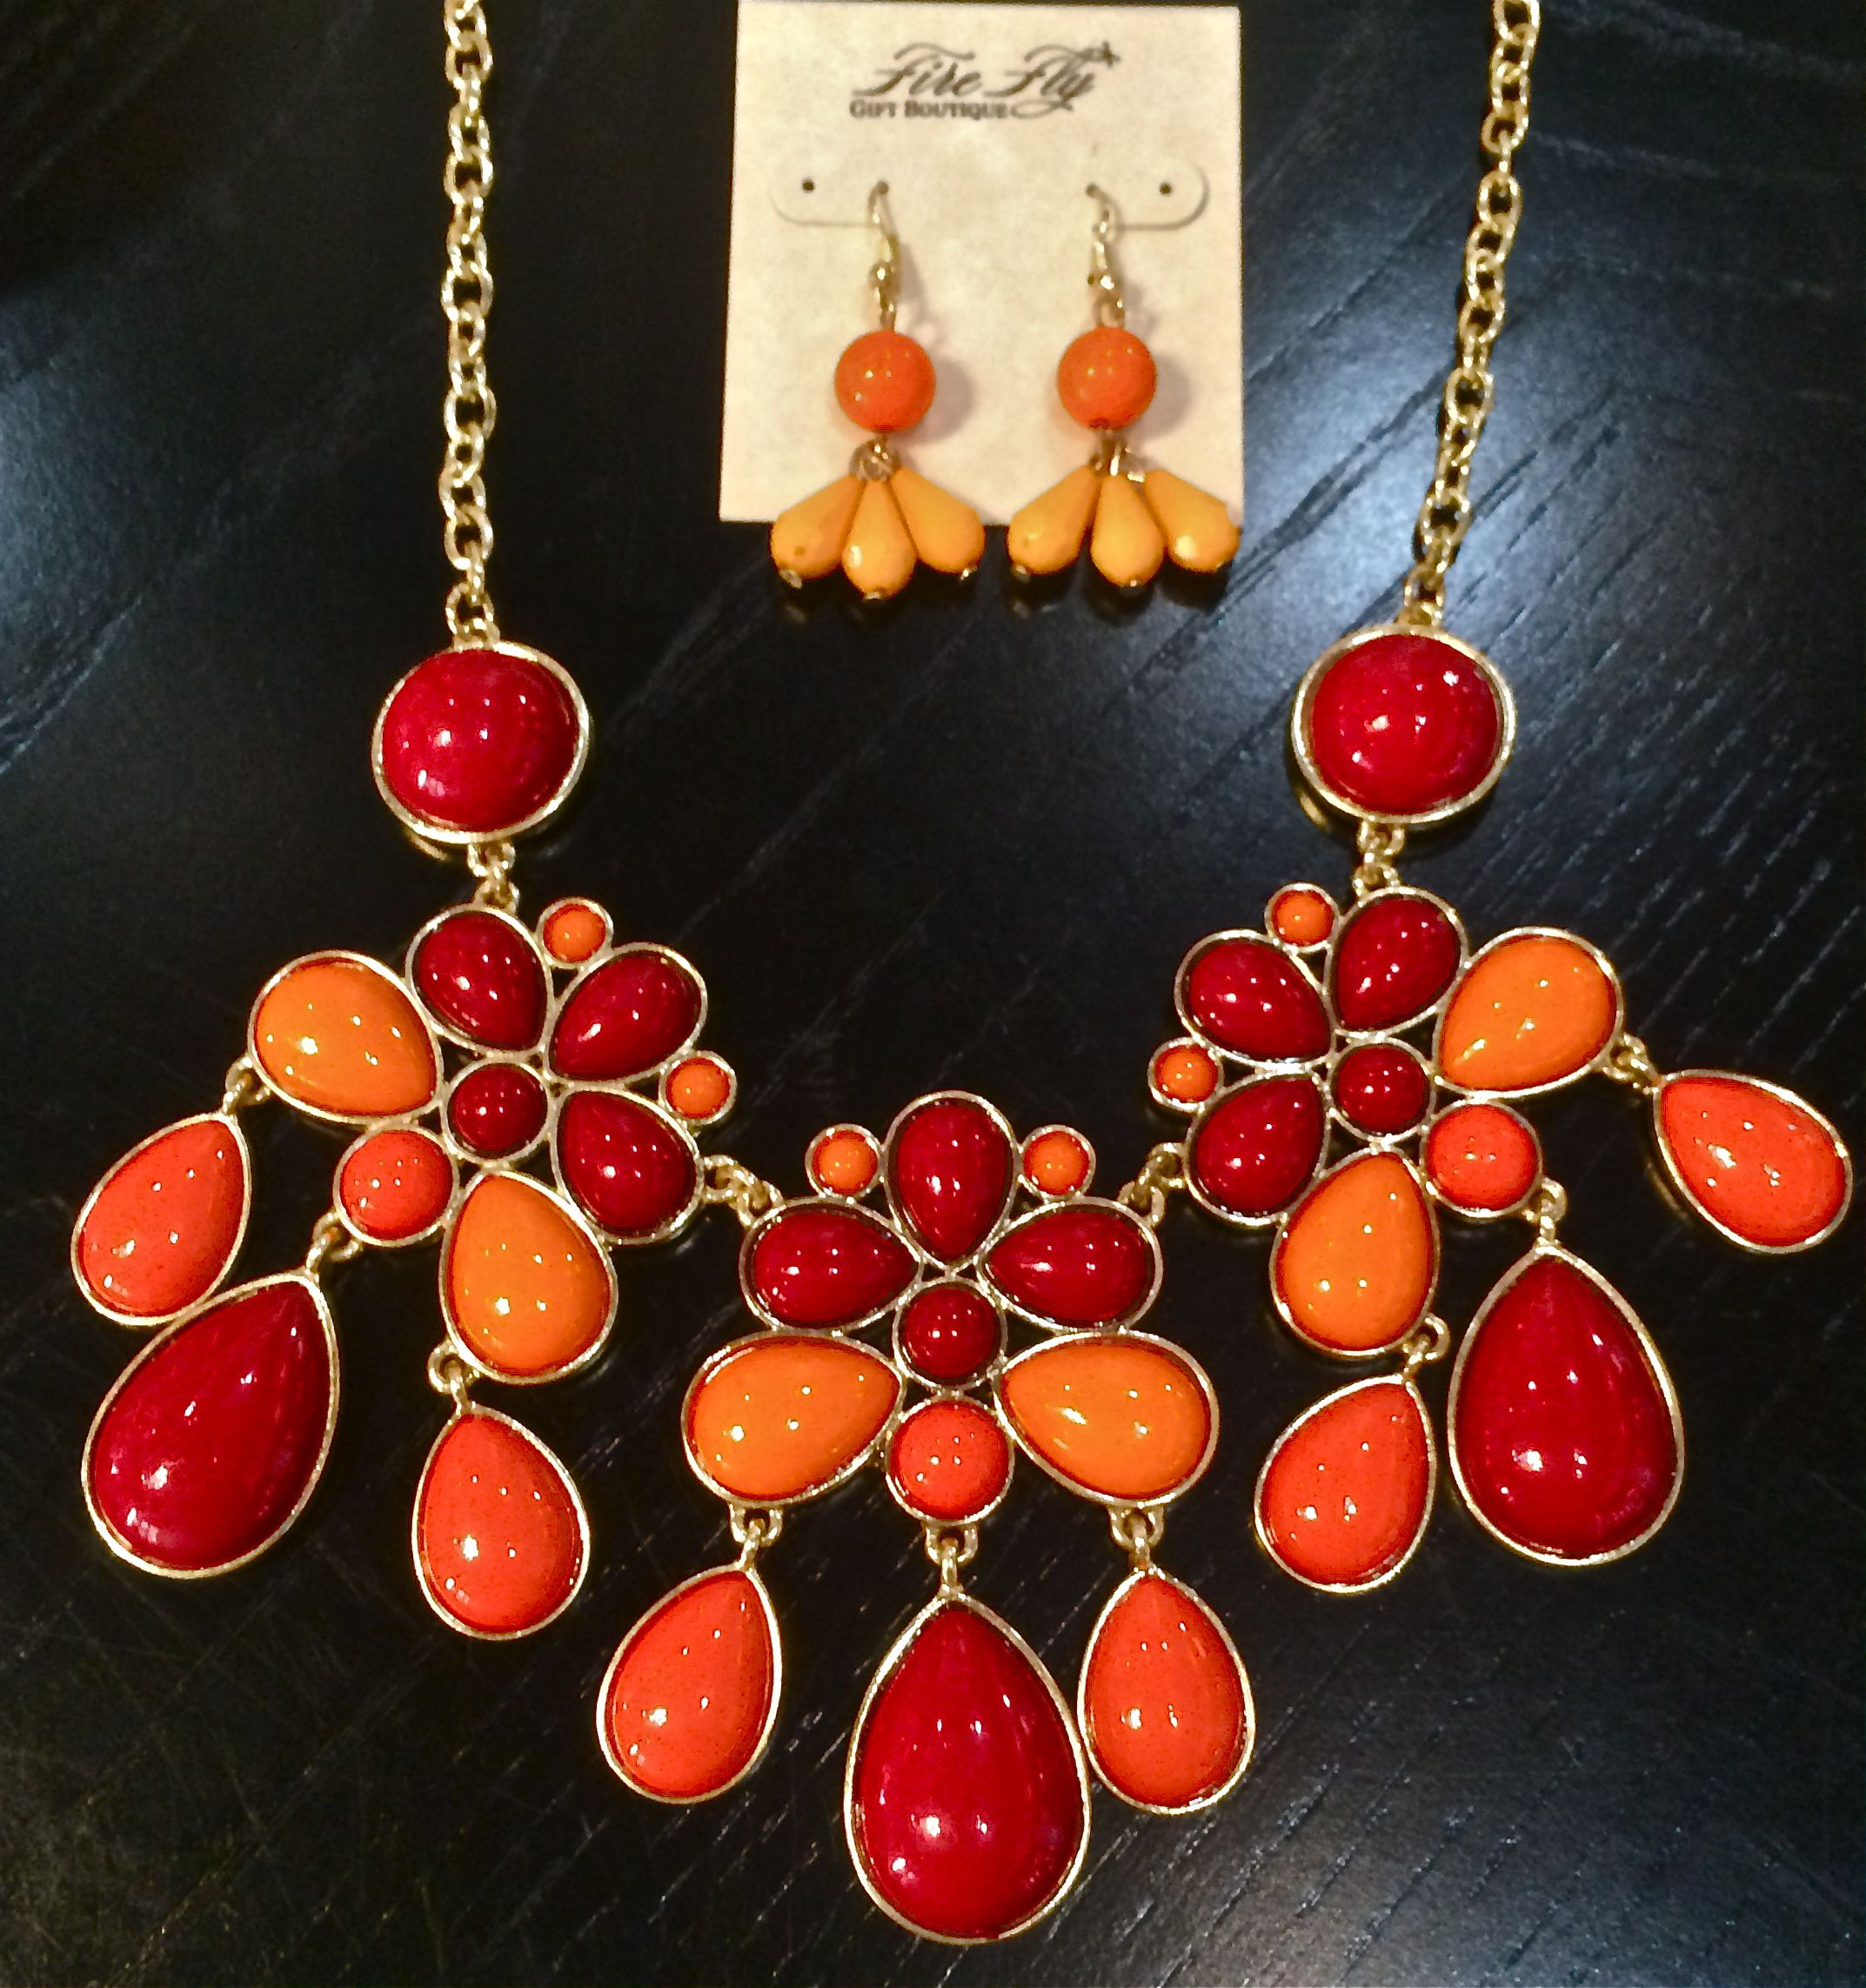 Shades of orange and red!  Mix with your favorite t-shirt or dress...